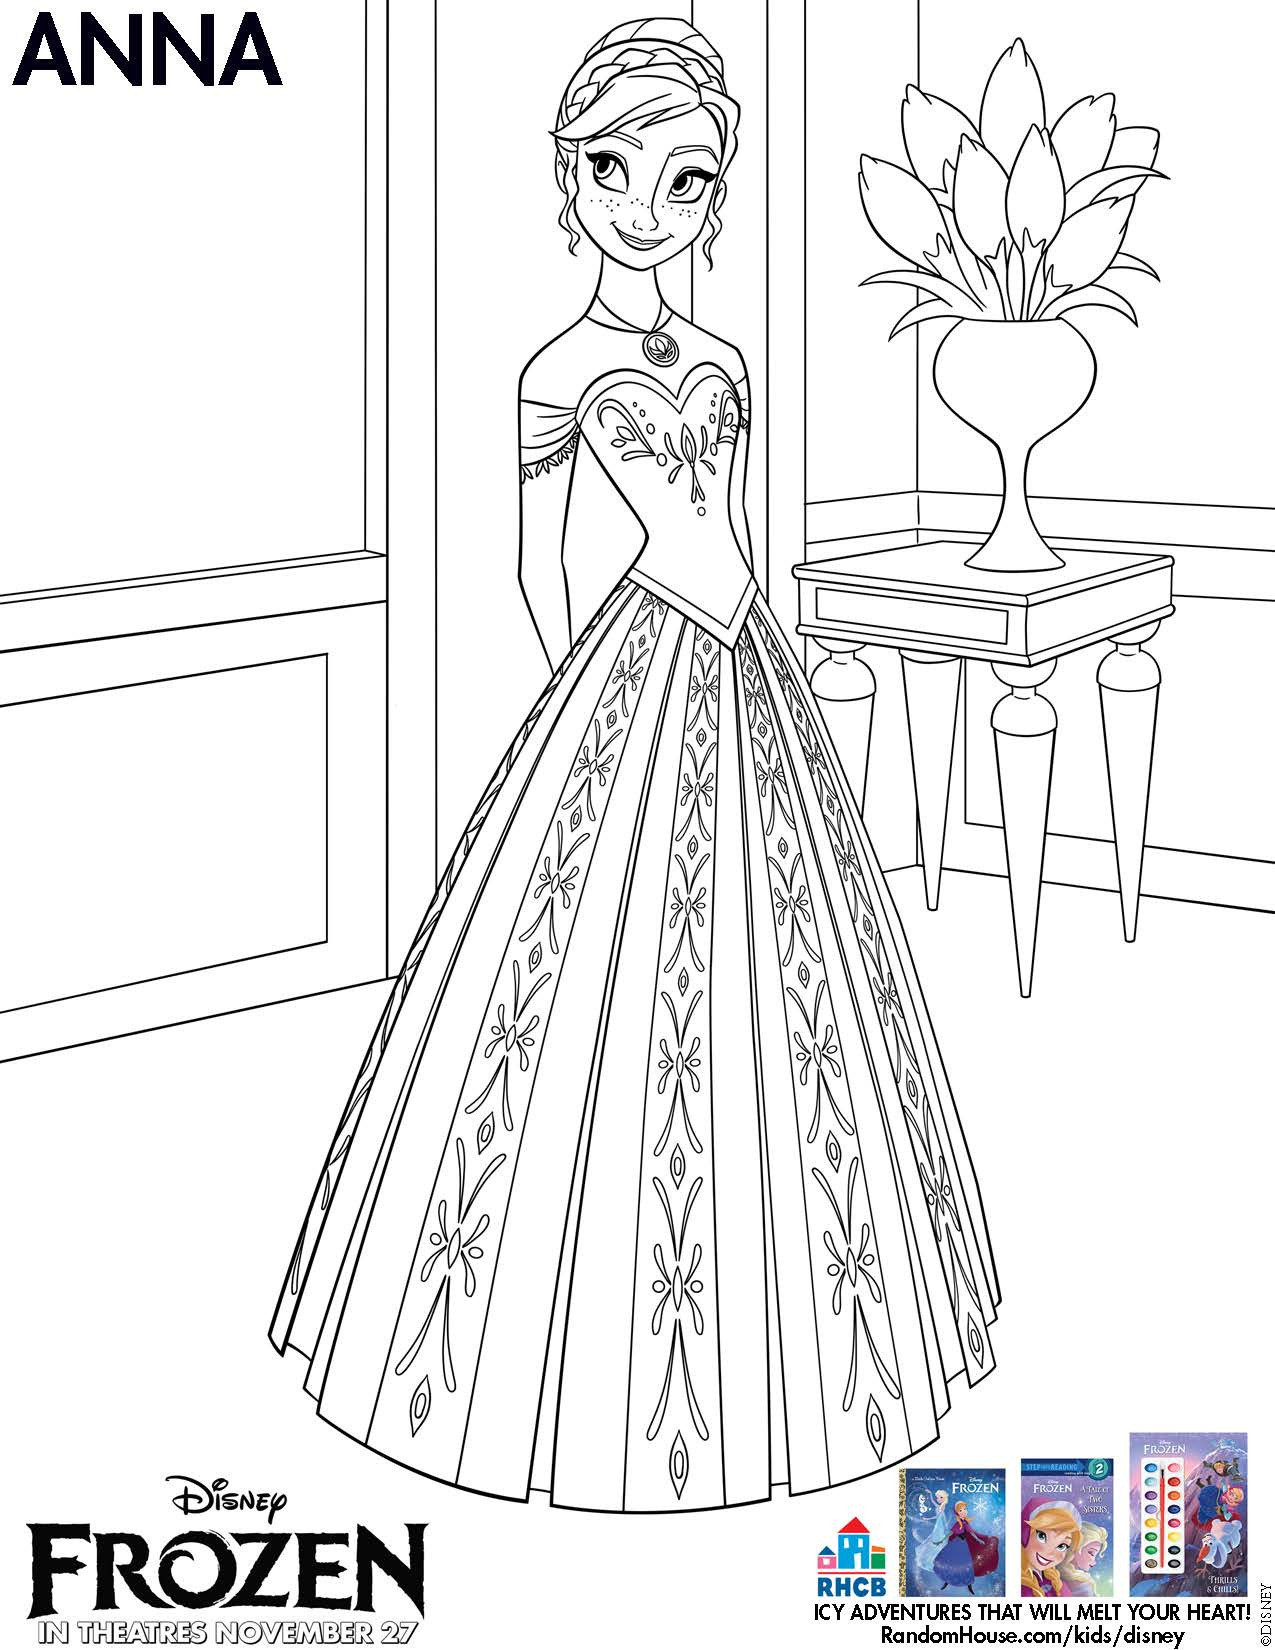 Best ideas about Disney Frozen Anna Free Printable Coloring Sheets . Save or Pin Disney s Frozen Printables Coloring Pages and Storybook App Now.